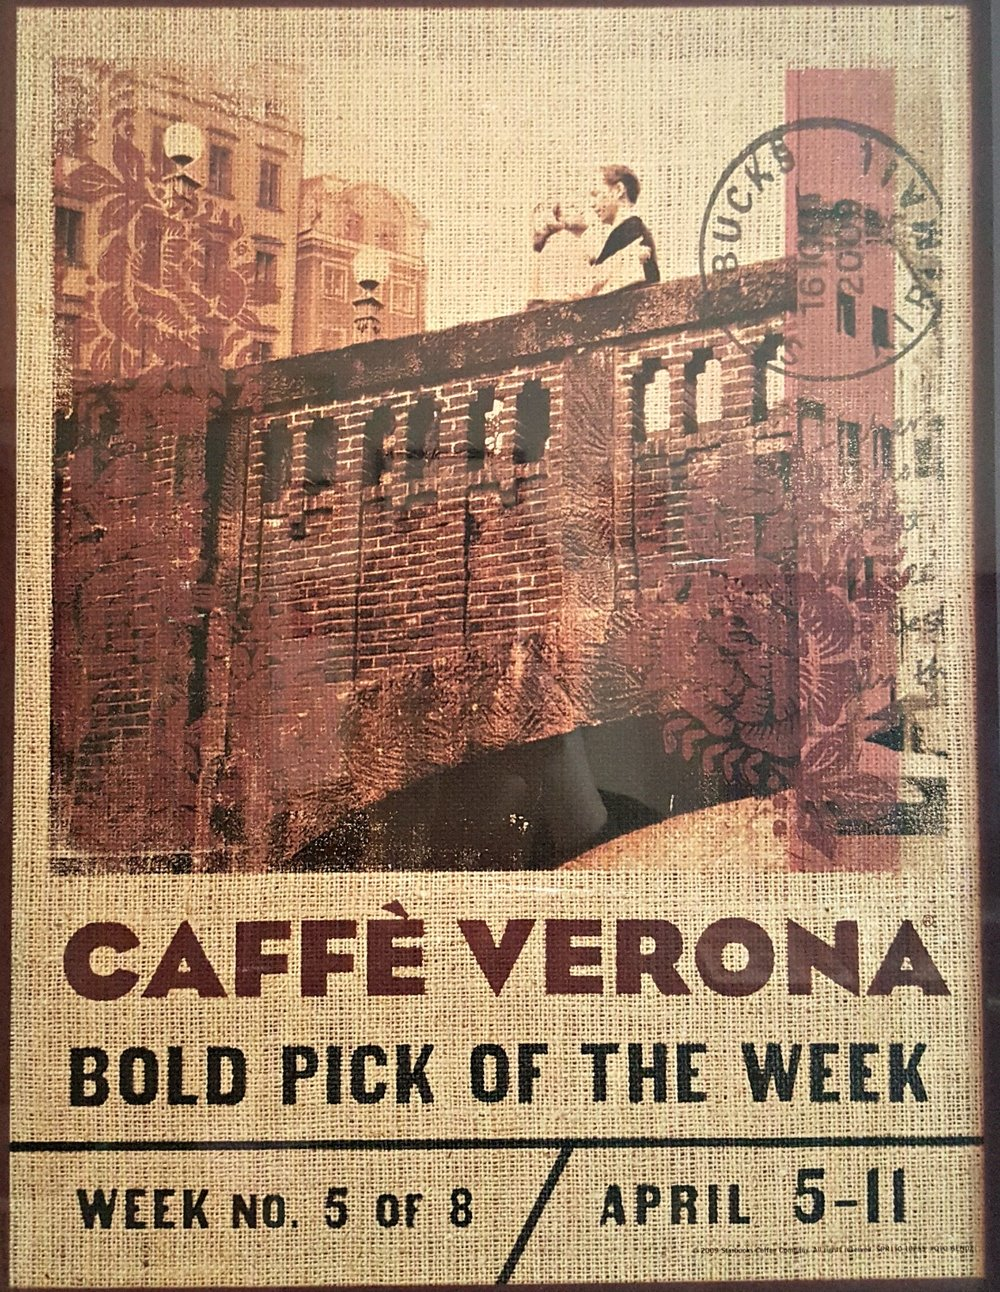 1 - 1 - 20160213_093024 Caffee Verona in store signage from spring 2009.jpg